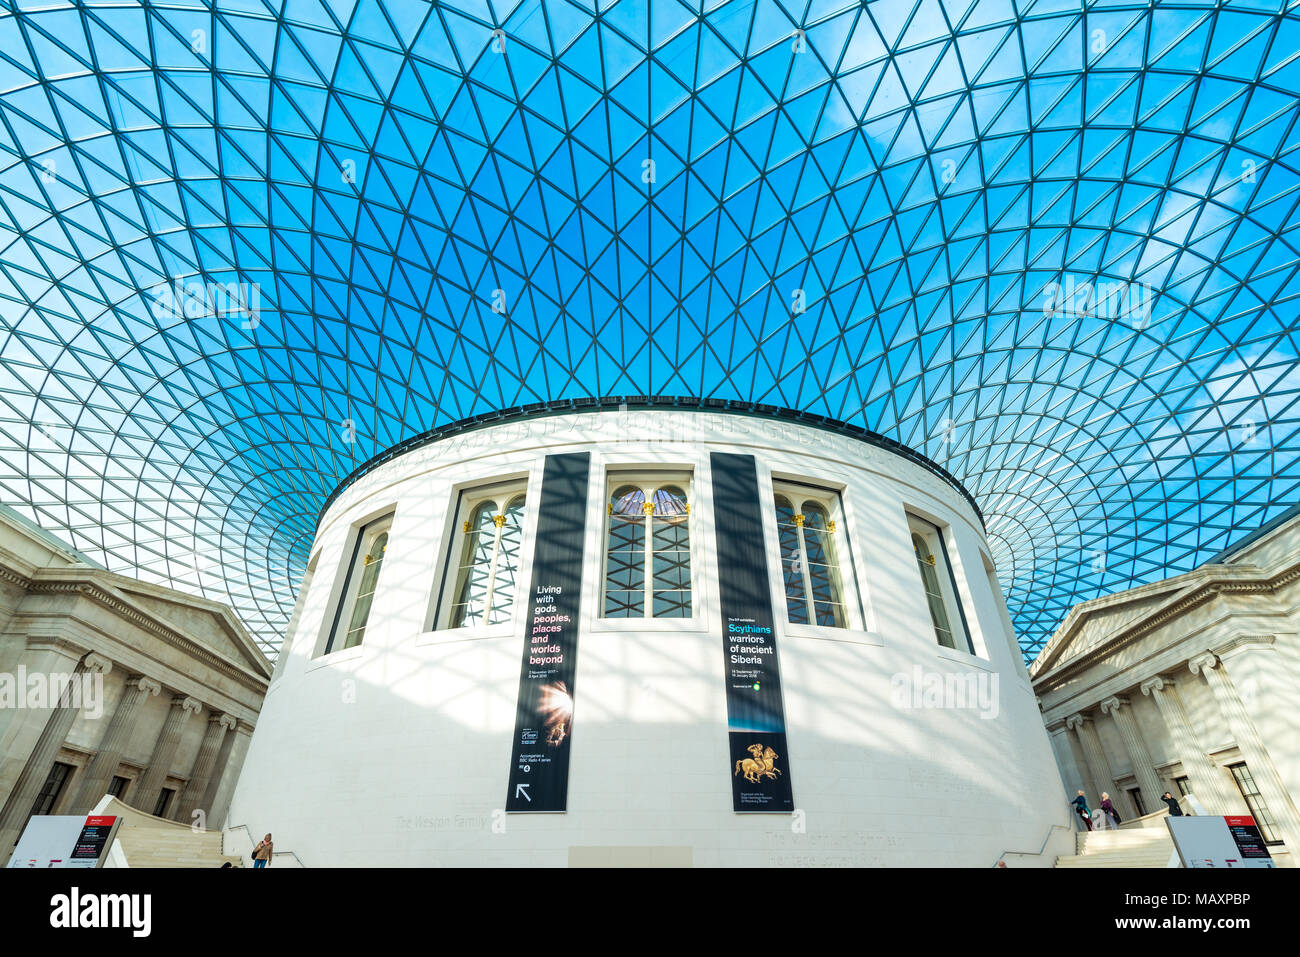 The Great Court of The British Museum, London, UK - Stock Image